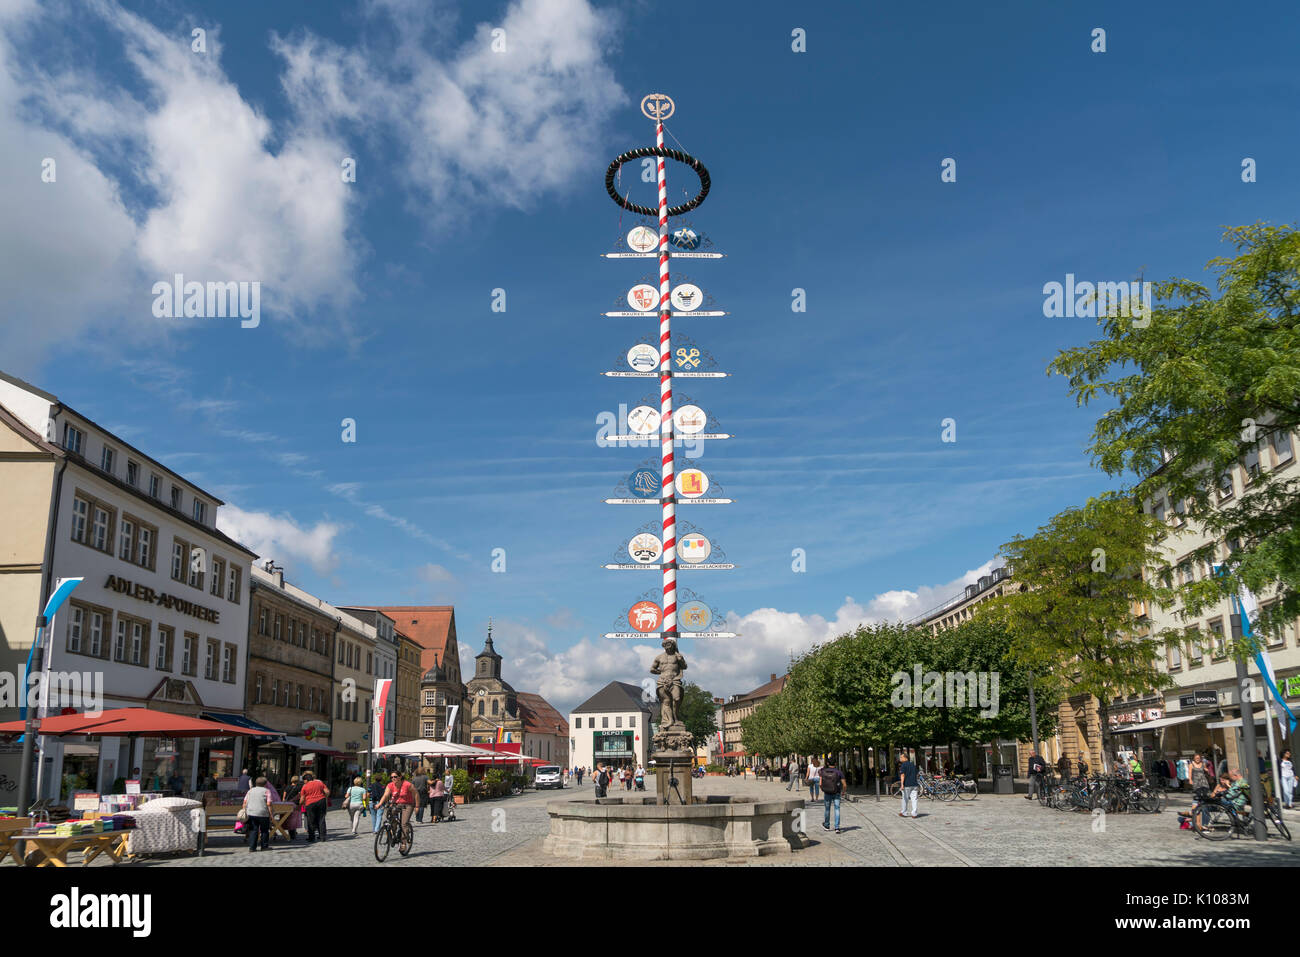 Zunftbaum in der Fussgängerzone Maximilianstrasse,  Bayreuth, Oberfranken, Bayern, Deutschland |  Maypole at the Pedestrian zone Maximilianstrasse,  B - Stock Image